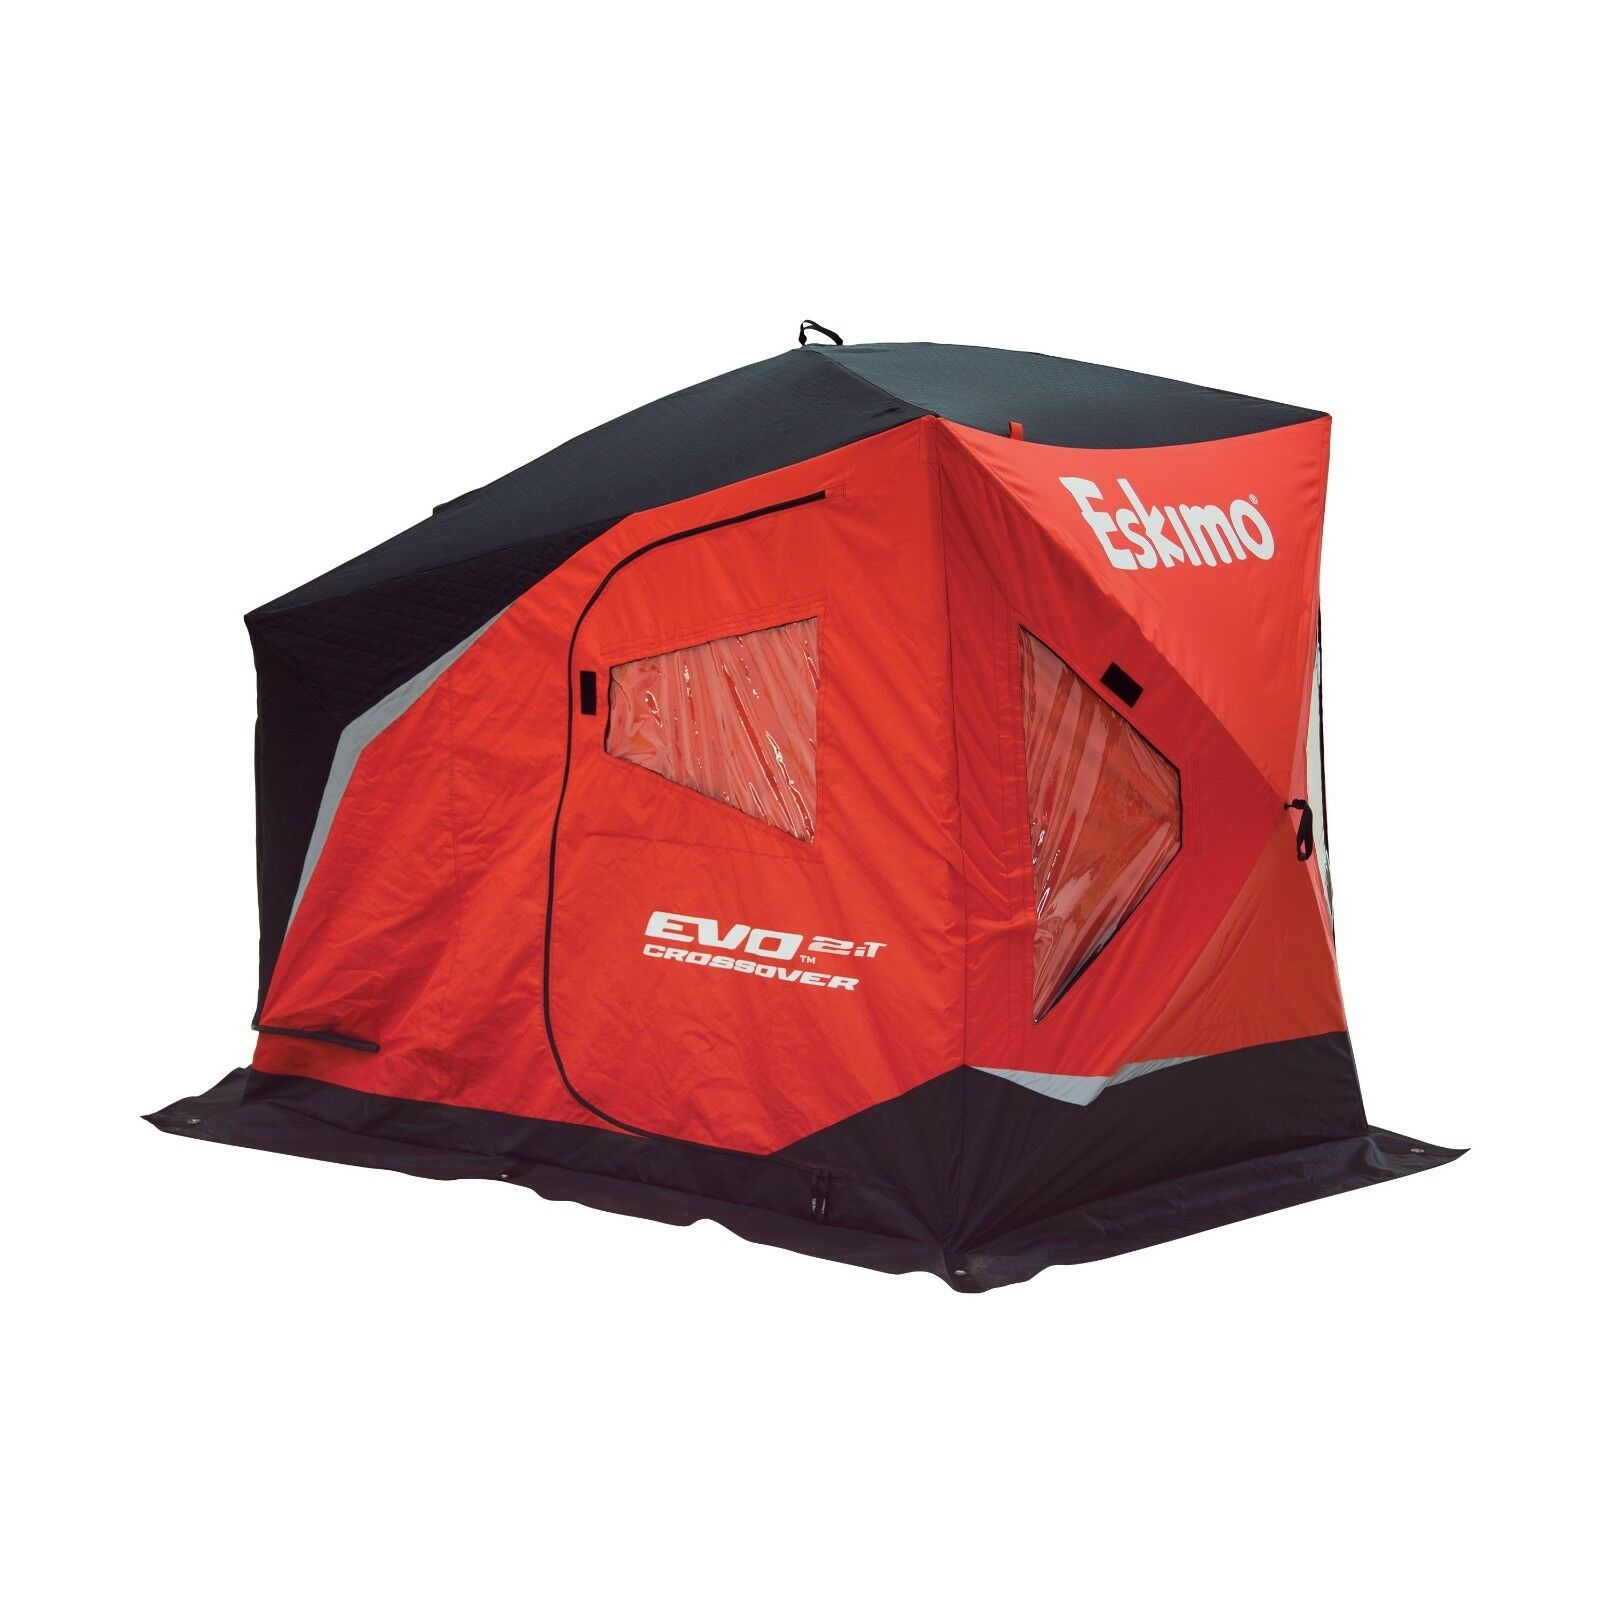 24565 Eskimo 25502 EVO 2IT  Sled Ice Shelter REPLACEMENT SKIN CANVAS ONLY  with 60% off discount